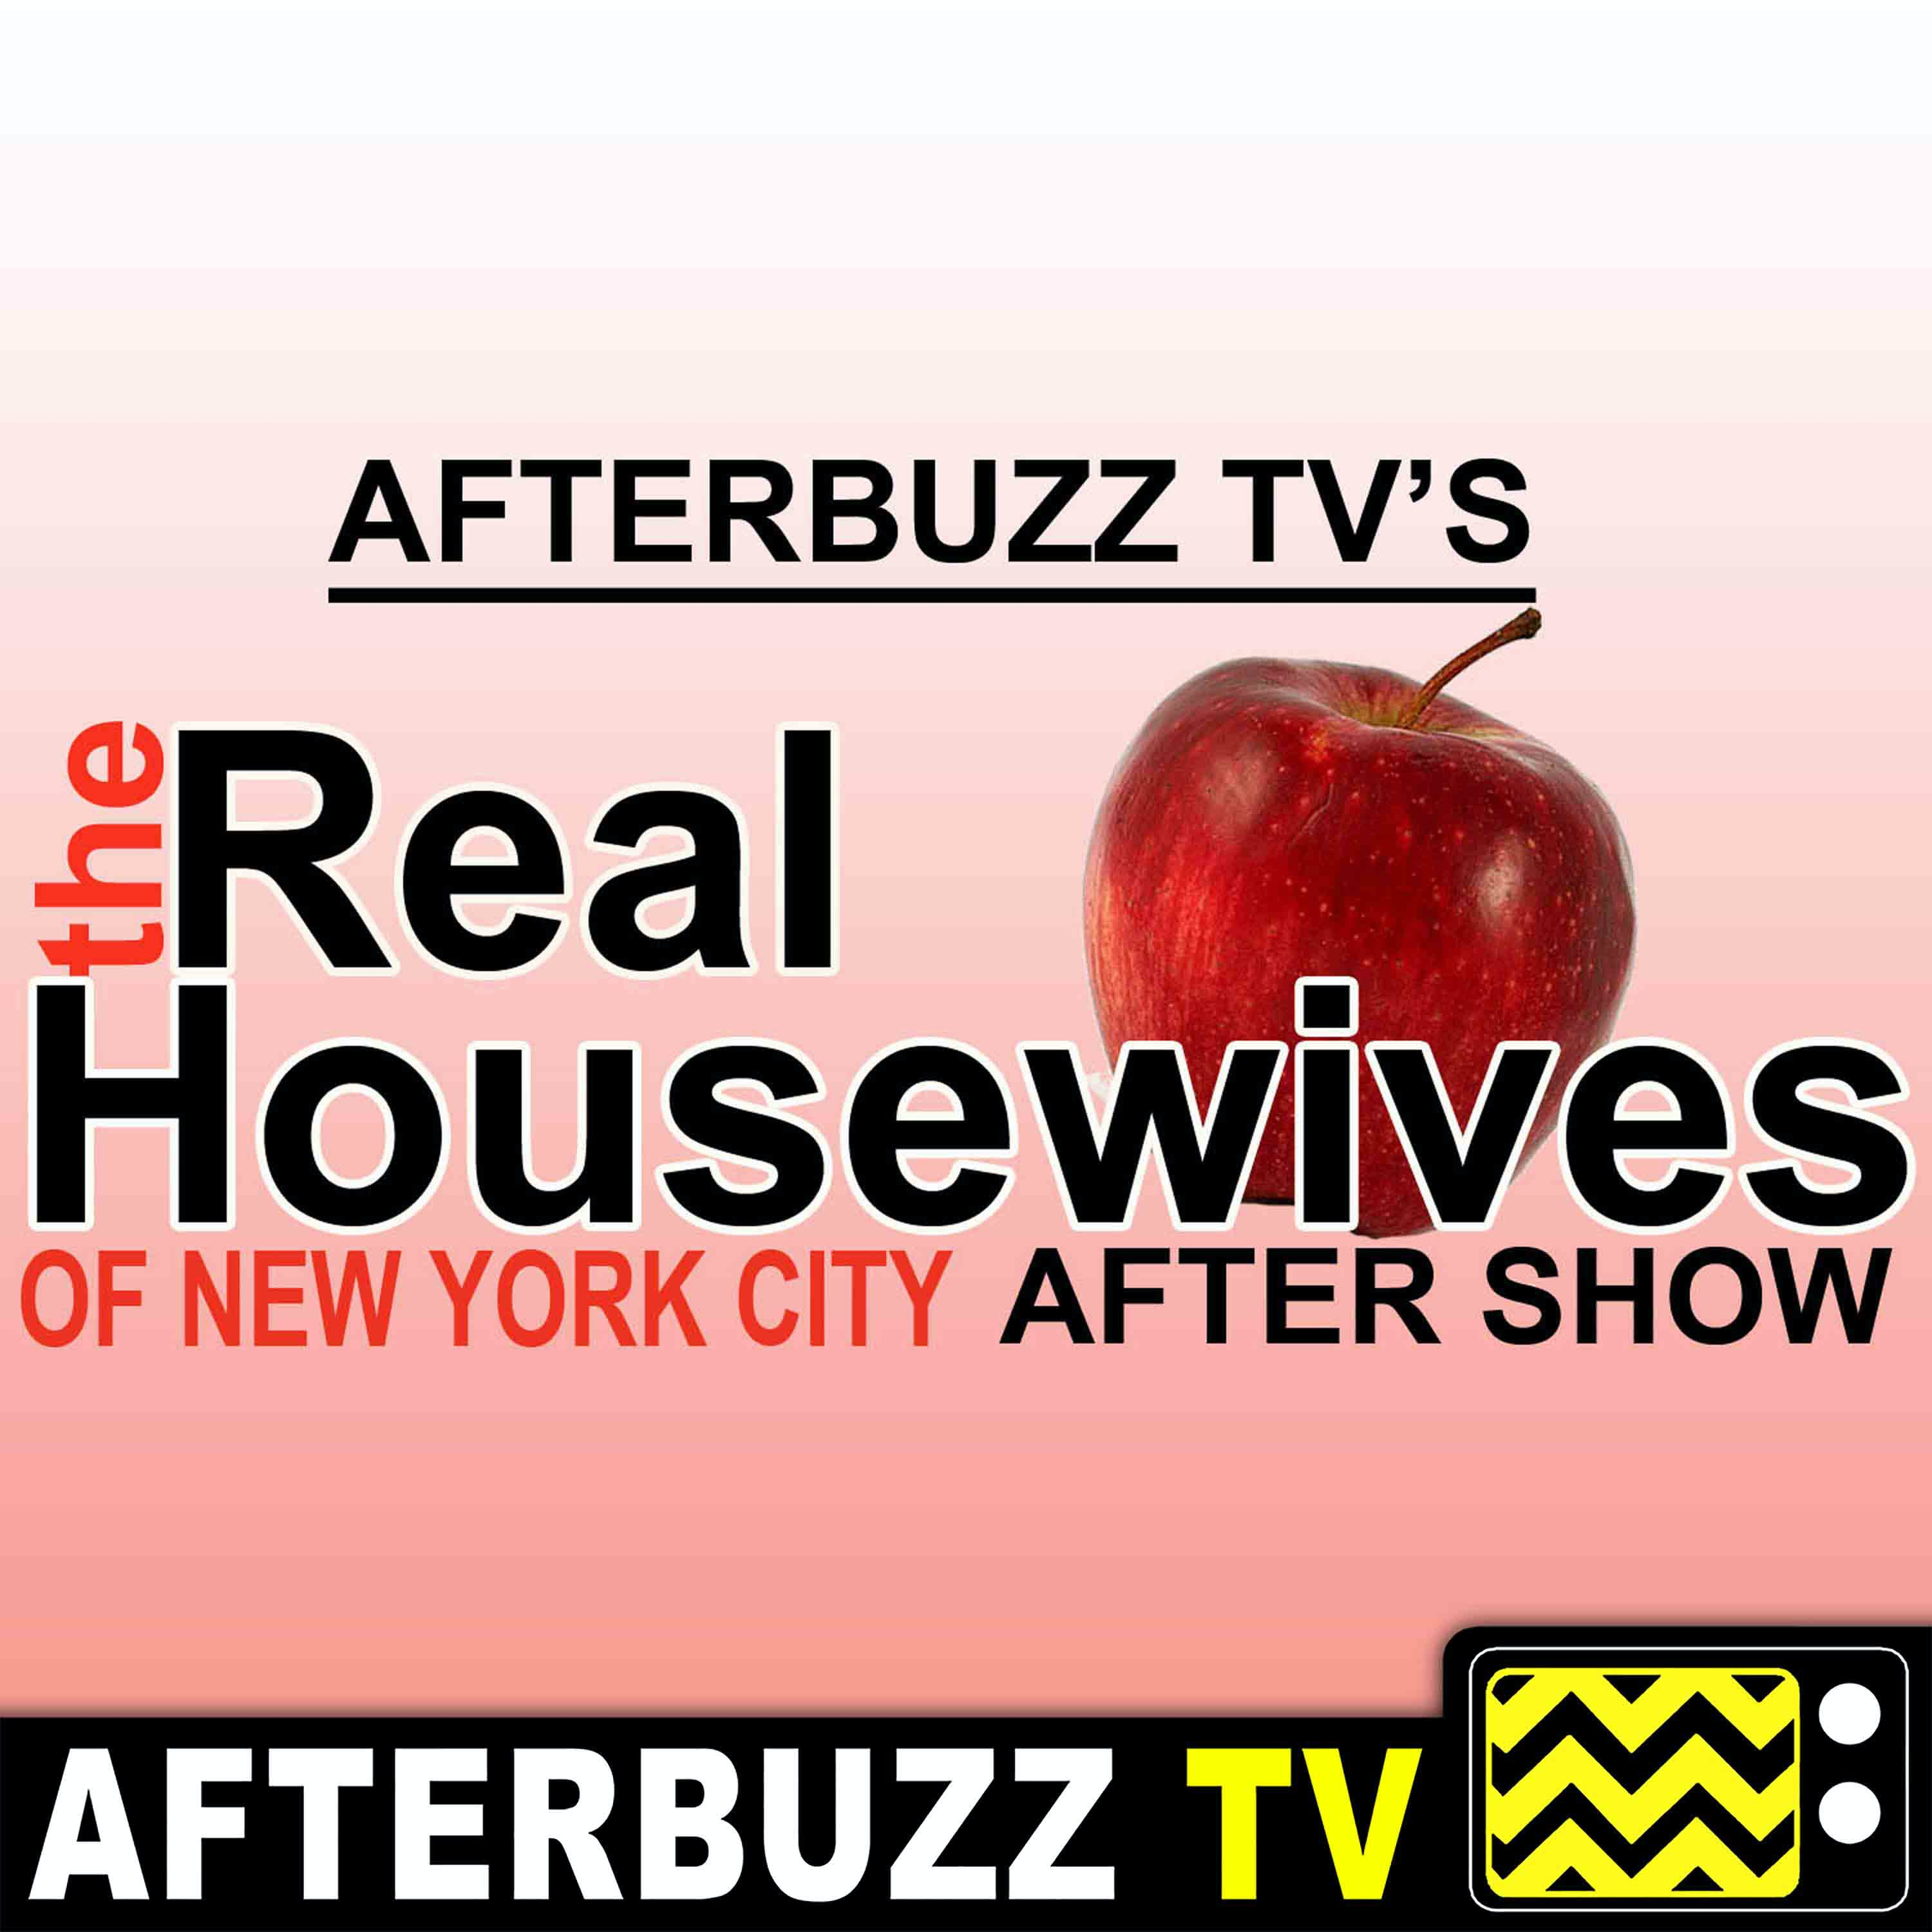 Real Housewives Of New York S12 E13 Recap & After Show: Back in the BARKshires